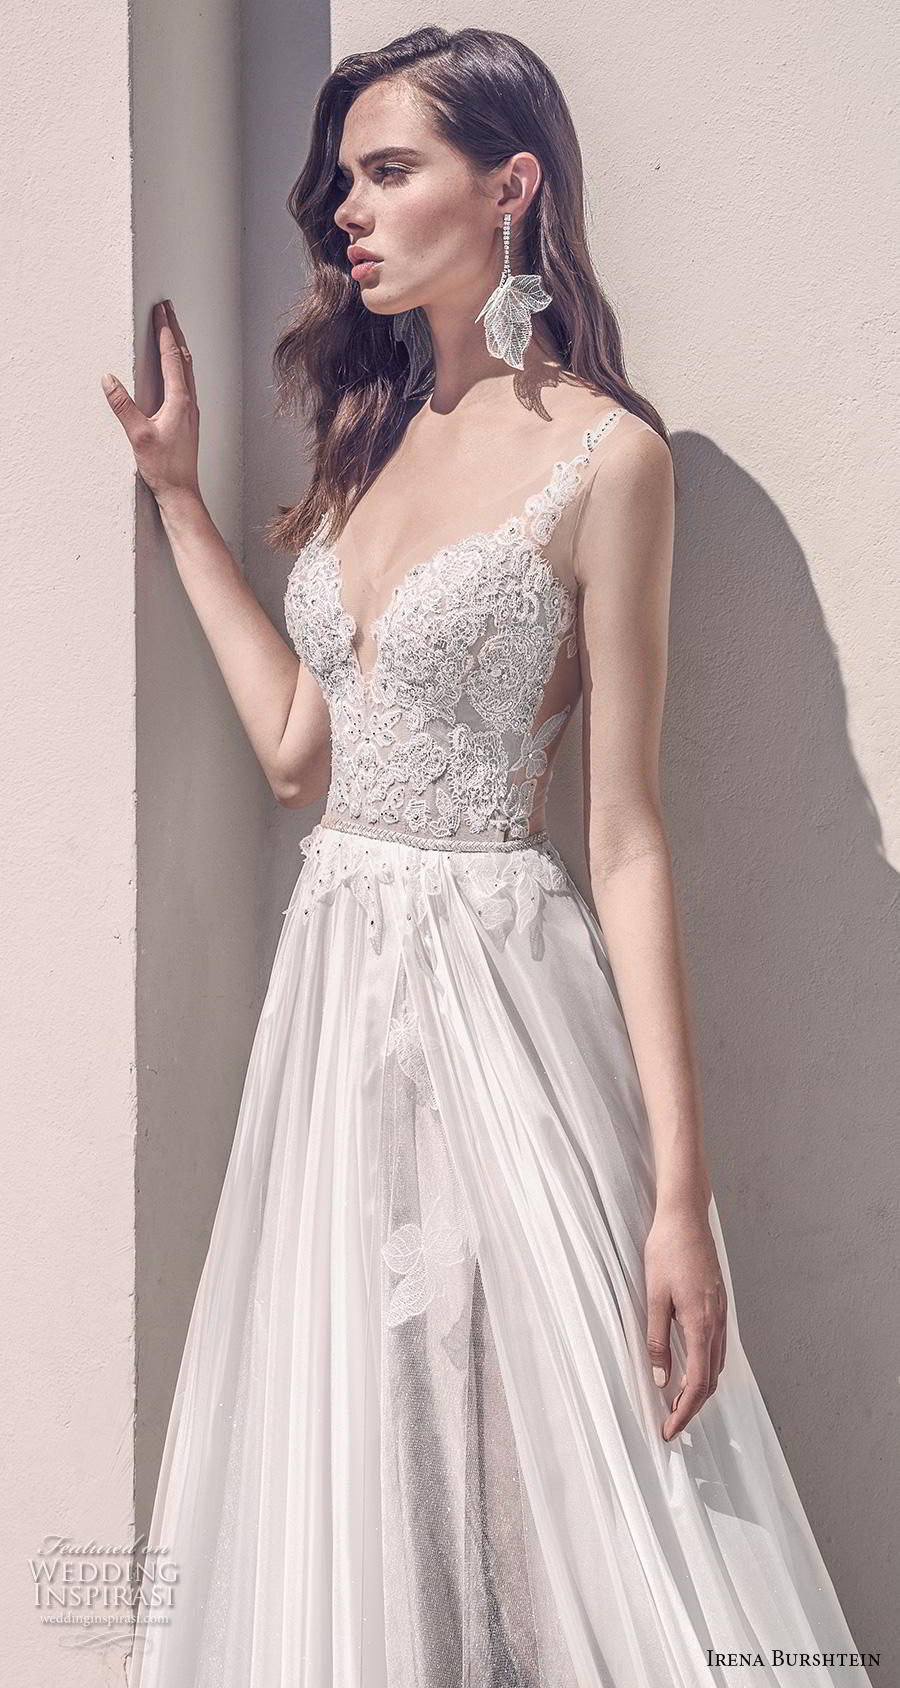 irena burshtein 2020 bridal sleeveless thin strap deep sweetheart neckline heavily embellished bodice romantic soft a  line wedding dress v back chapel train (6) zv